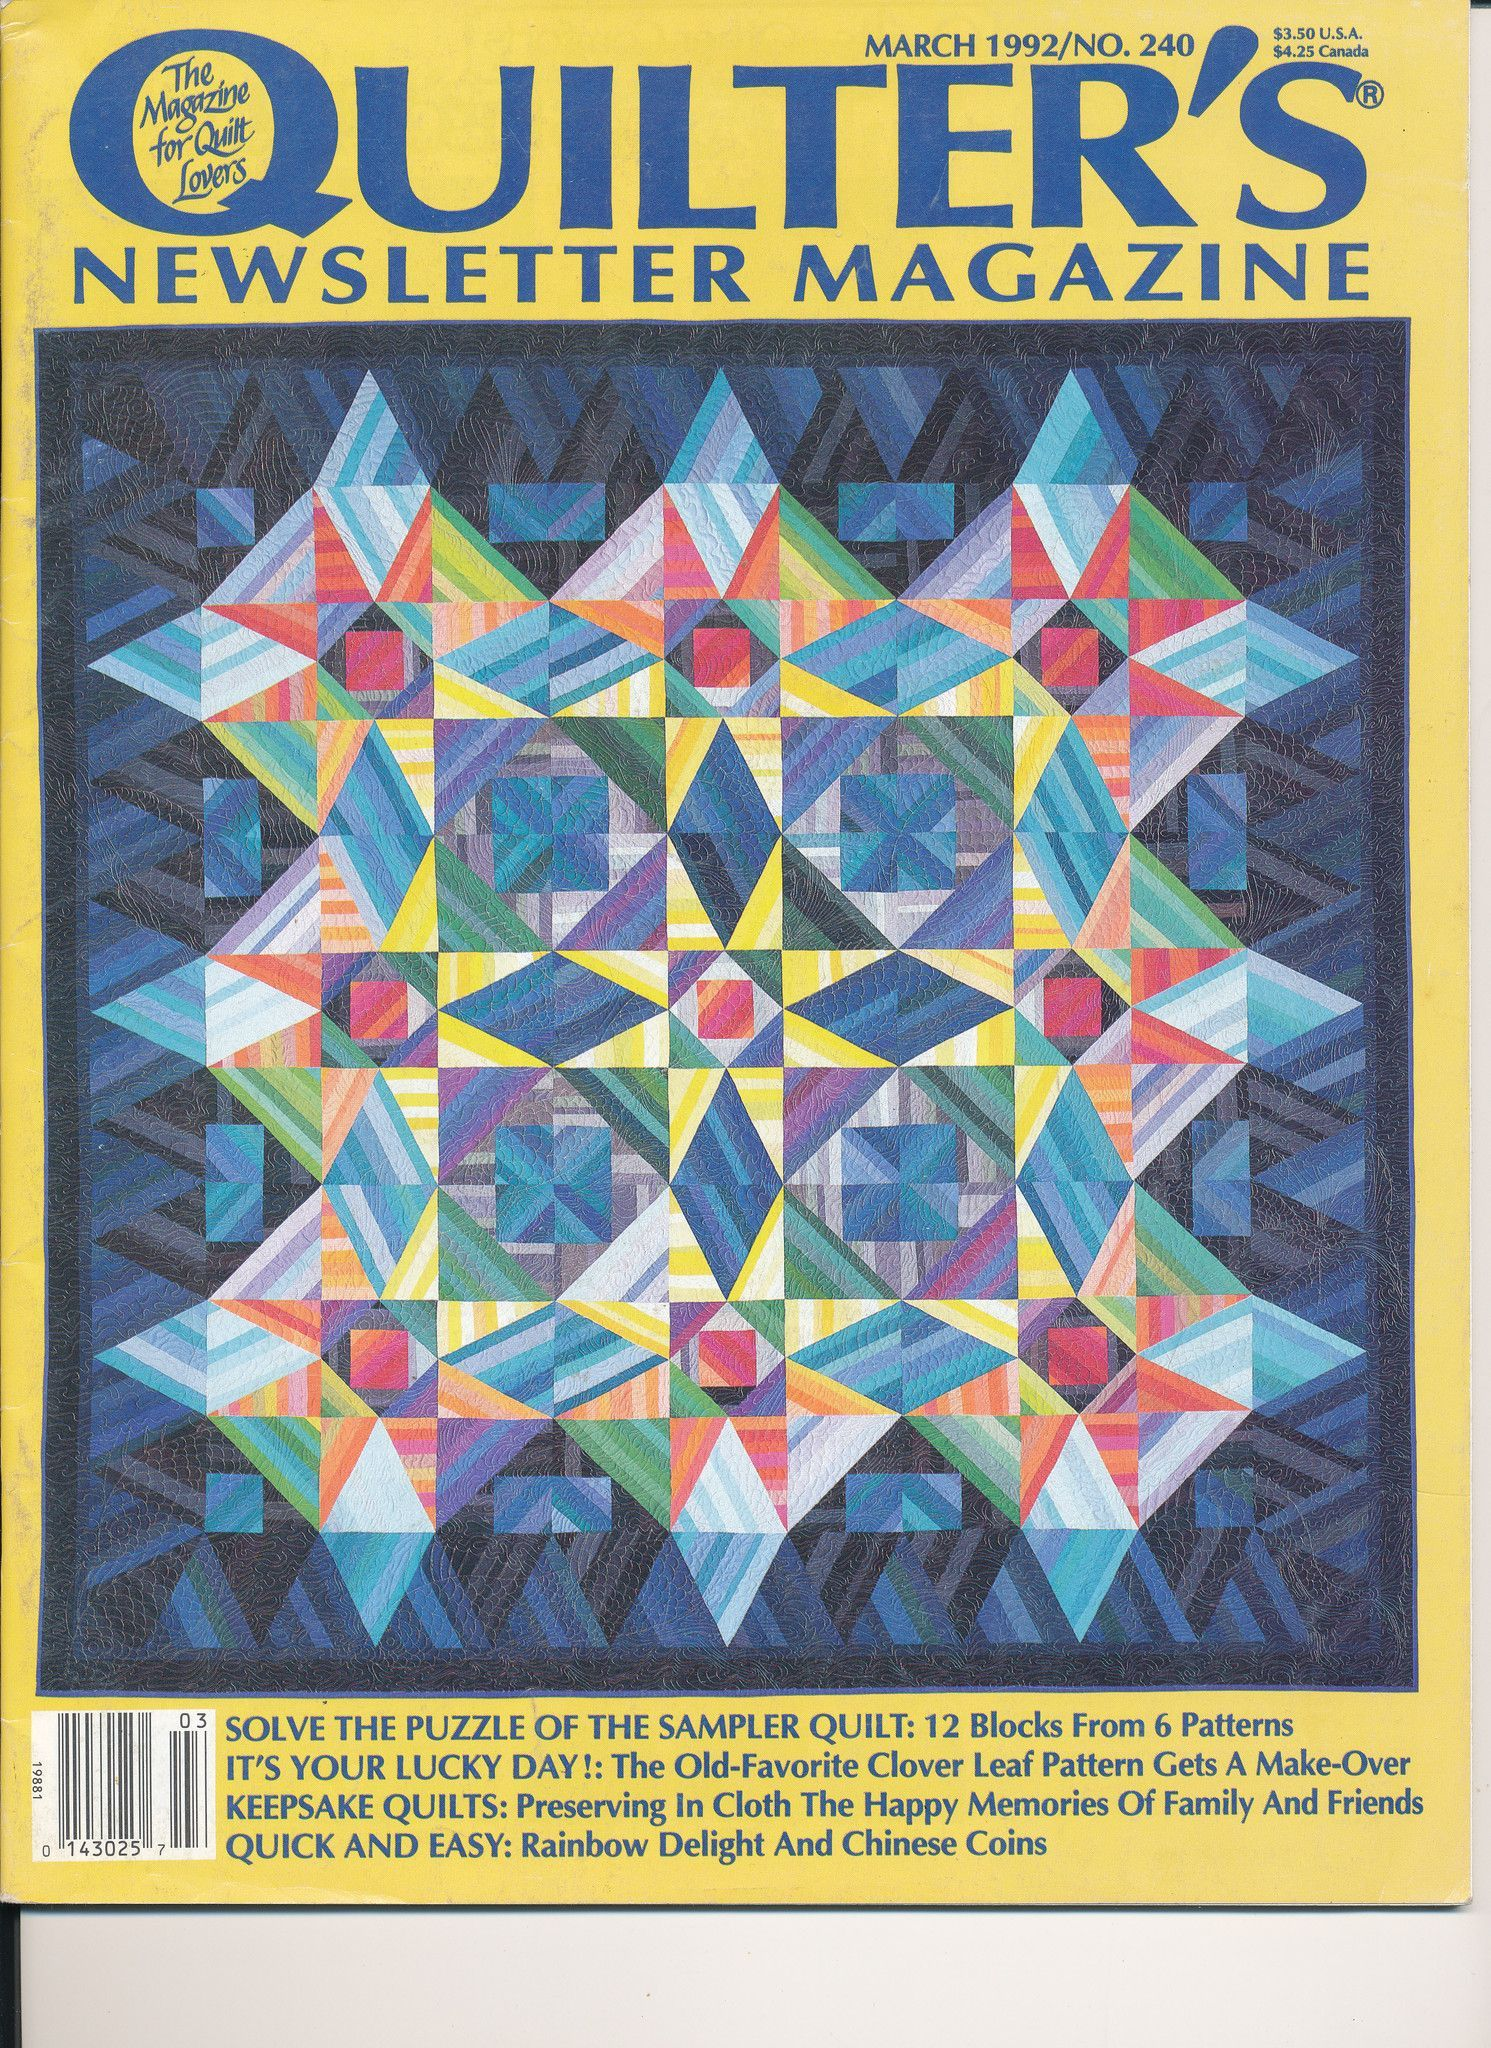 Quilter's Newsletter Magazine March 1992 /No. 240